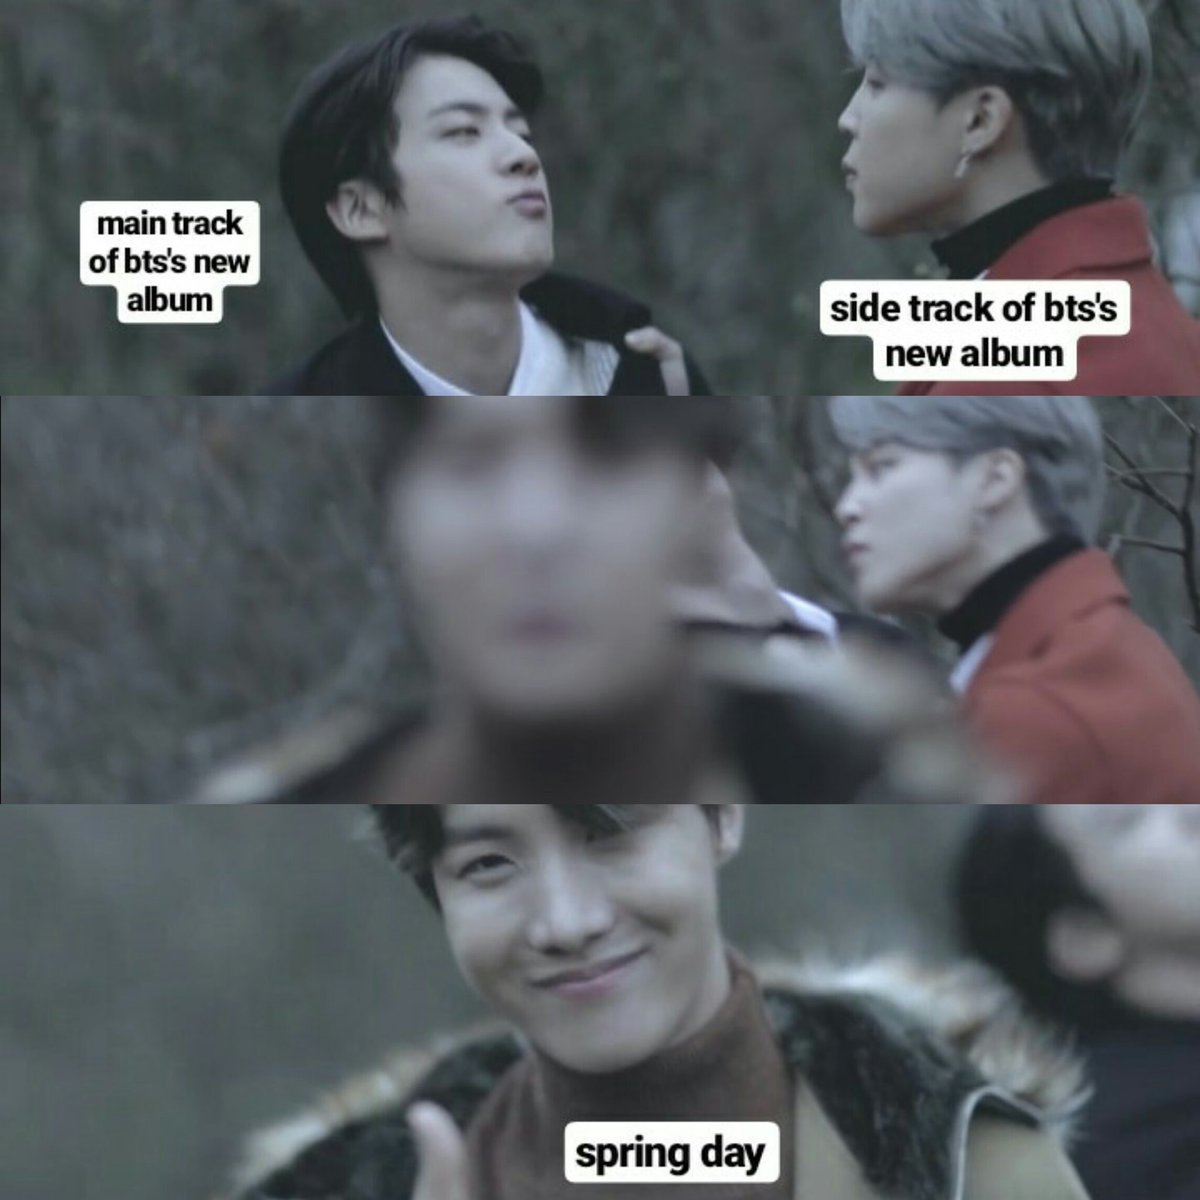 30 Bts Spring Day Memes That Scream Bow Down To The Queen